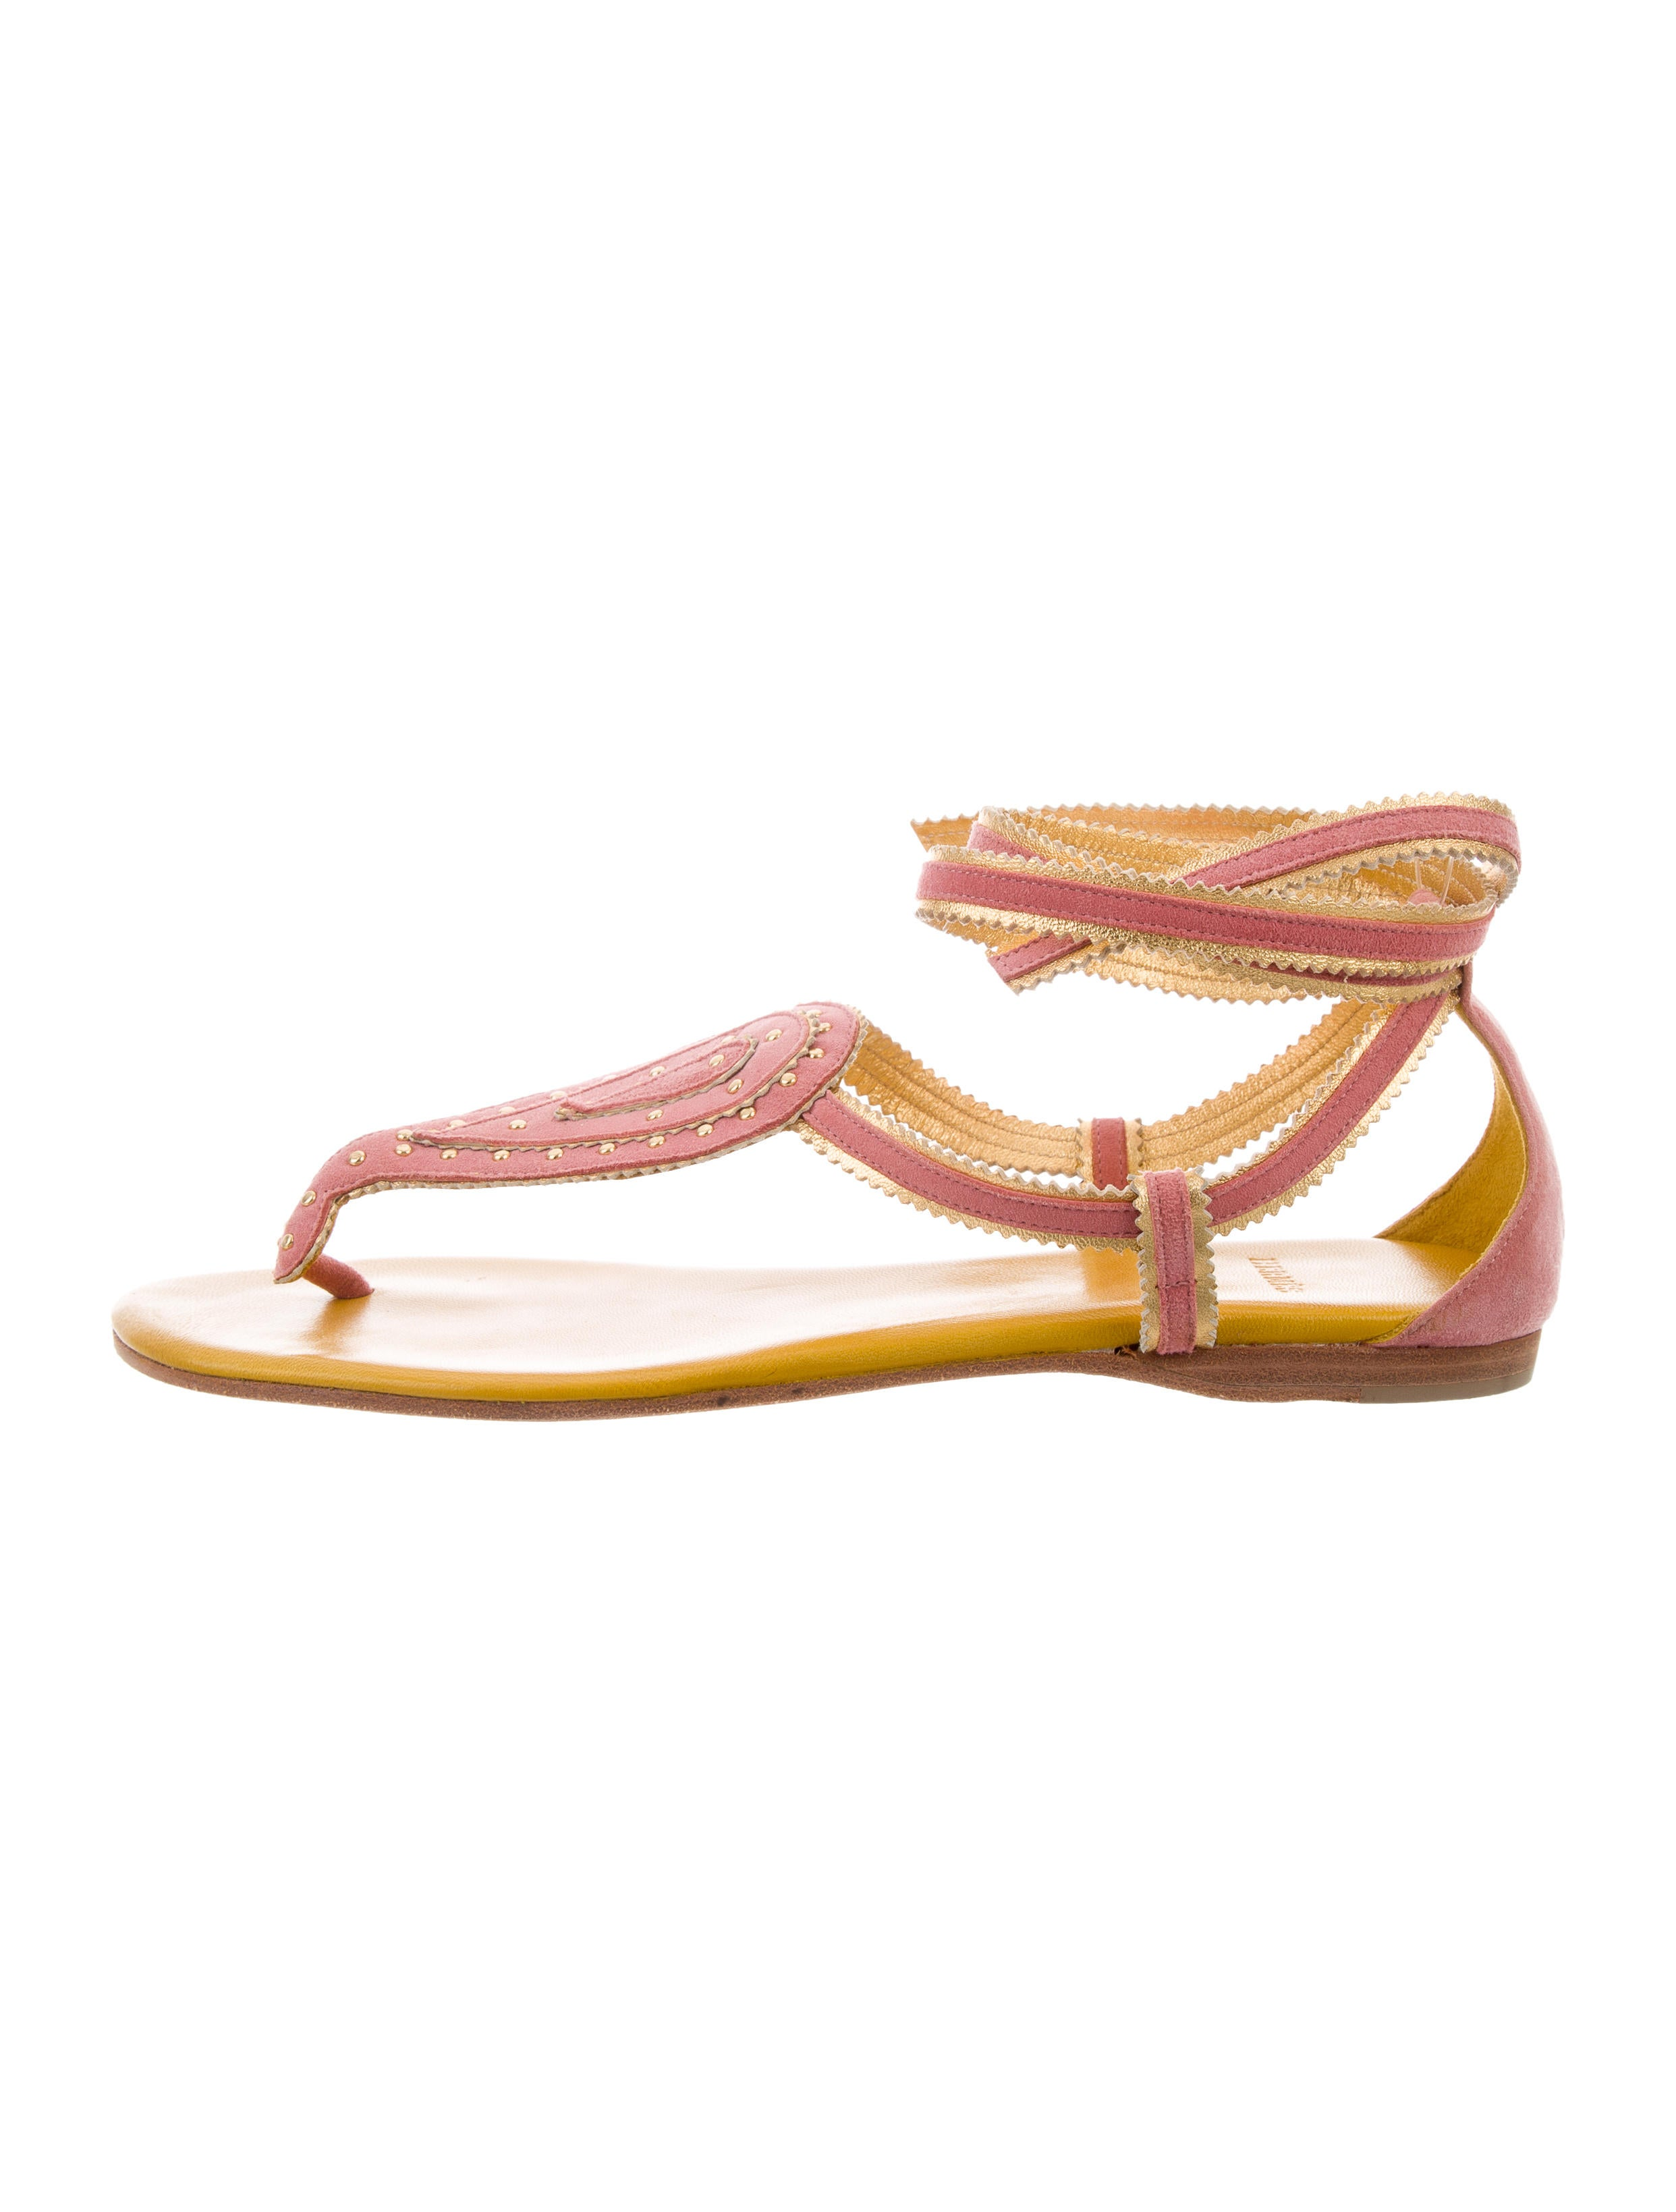 sale under $60 buy cheap lowest price Hermès Suede Lace-Up Sandals free shipping recommend VbJJtPq9